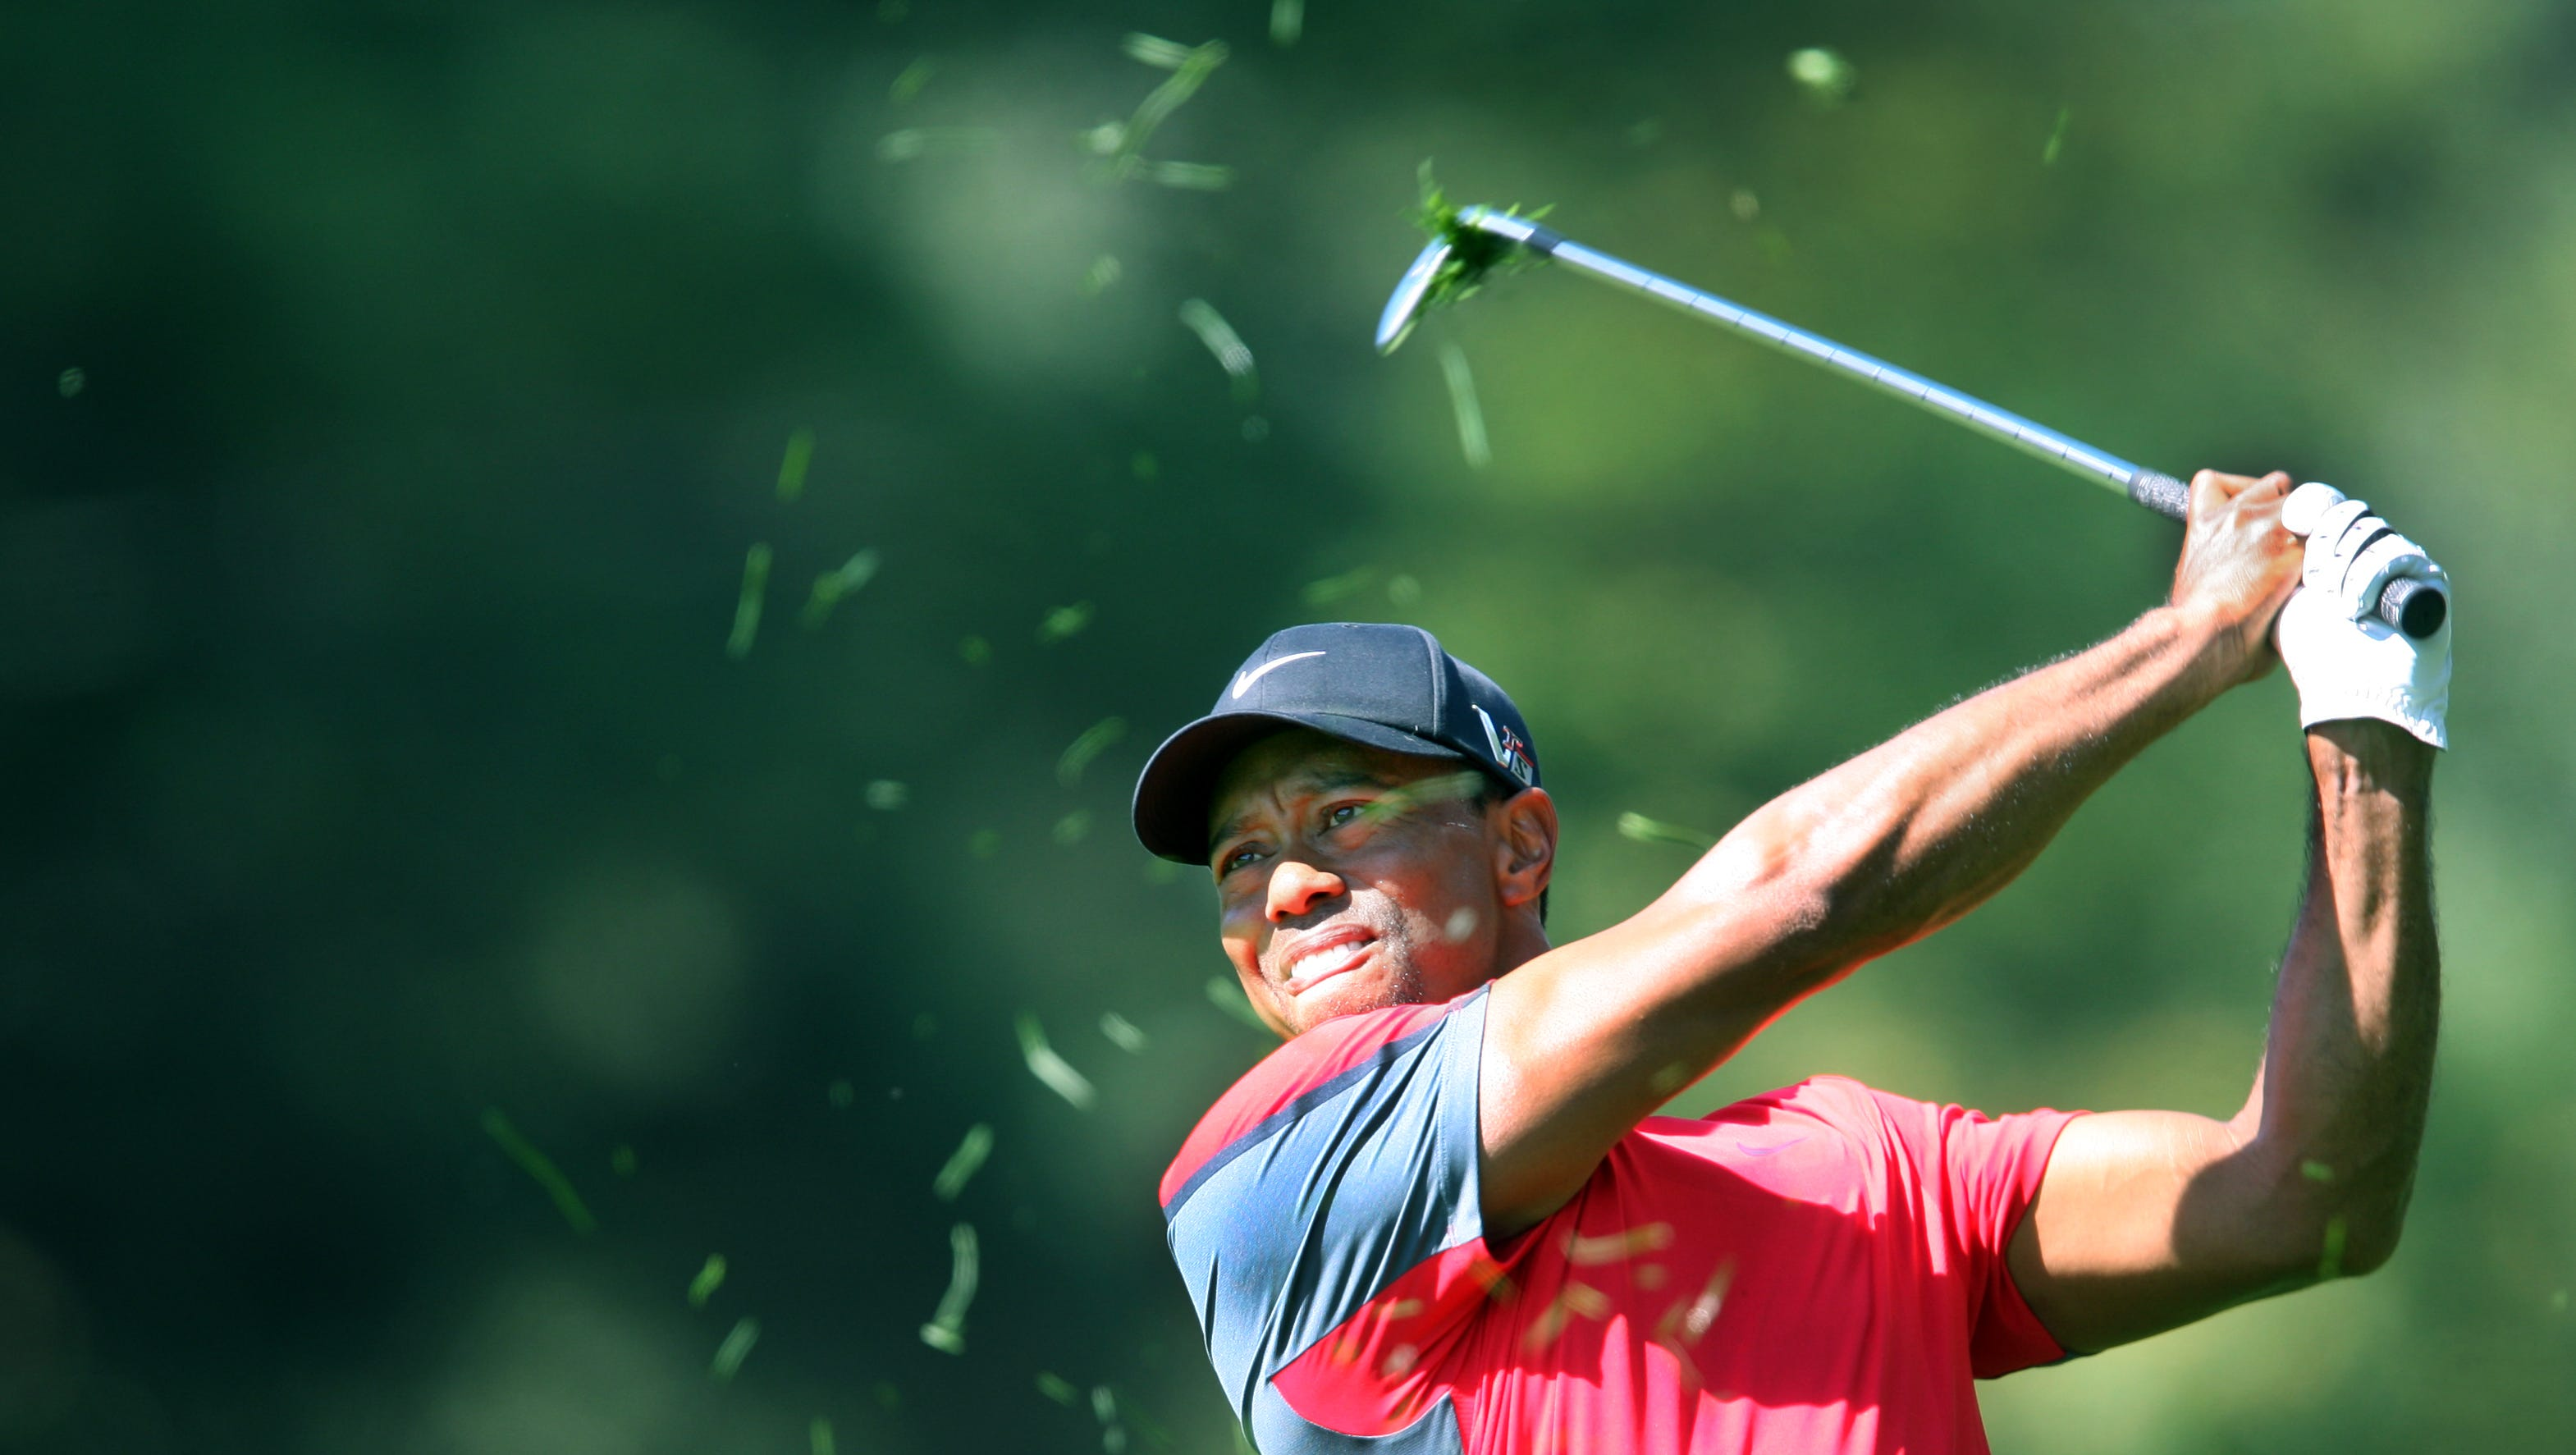 Tiger Woods swings on the 1 fairway during the final round of the 95th PGA championship at Oak Hill Country Club.